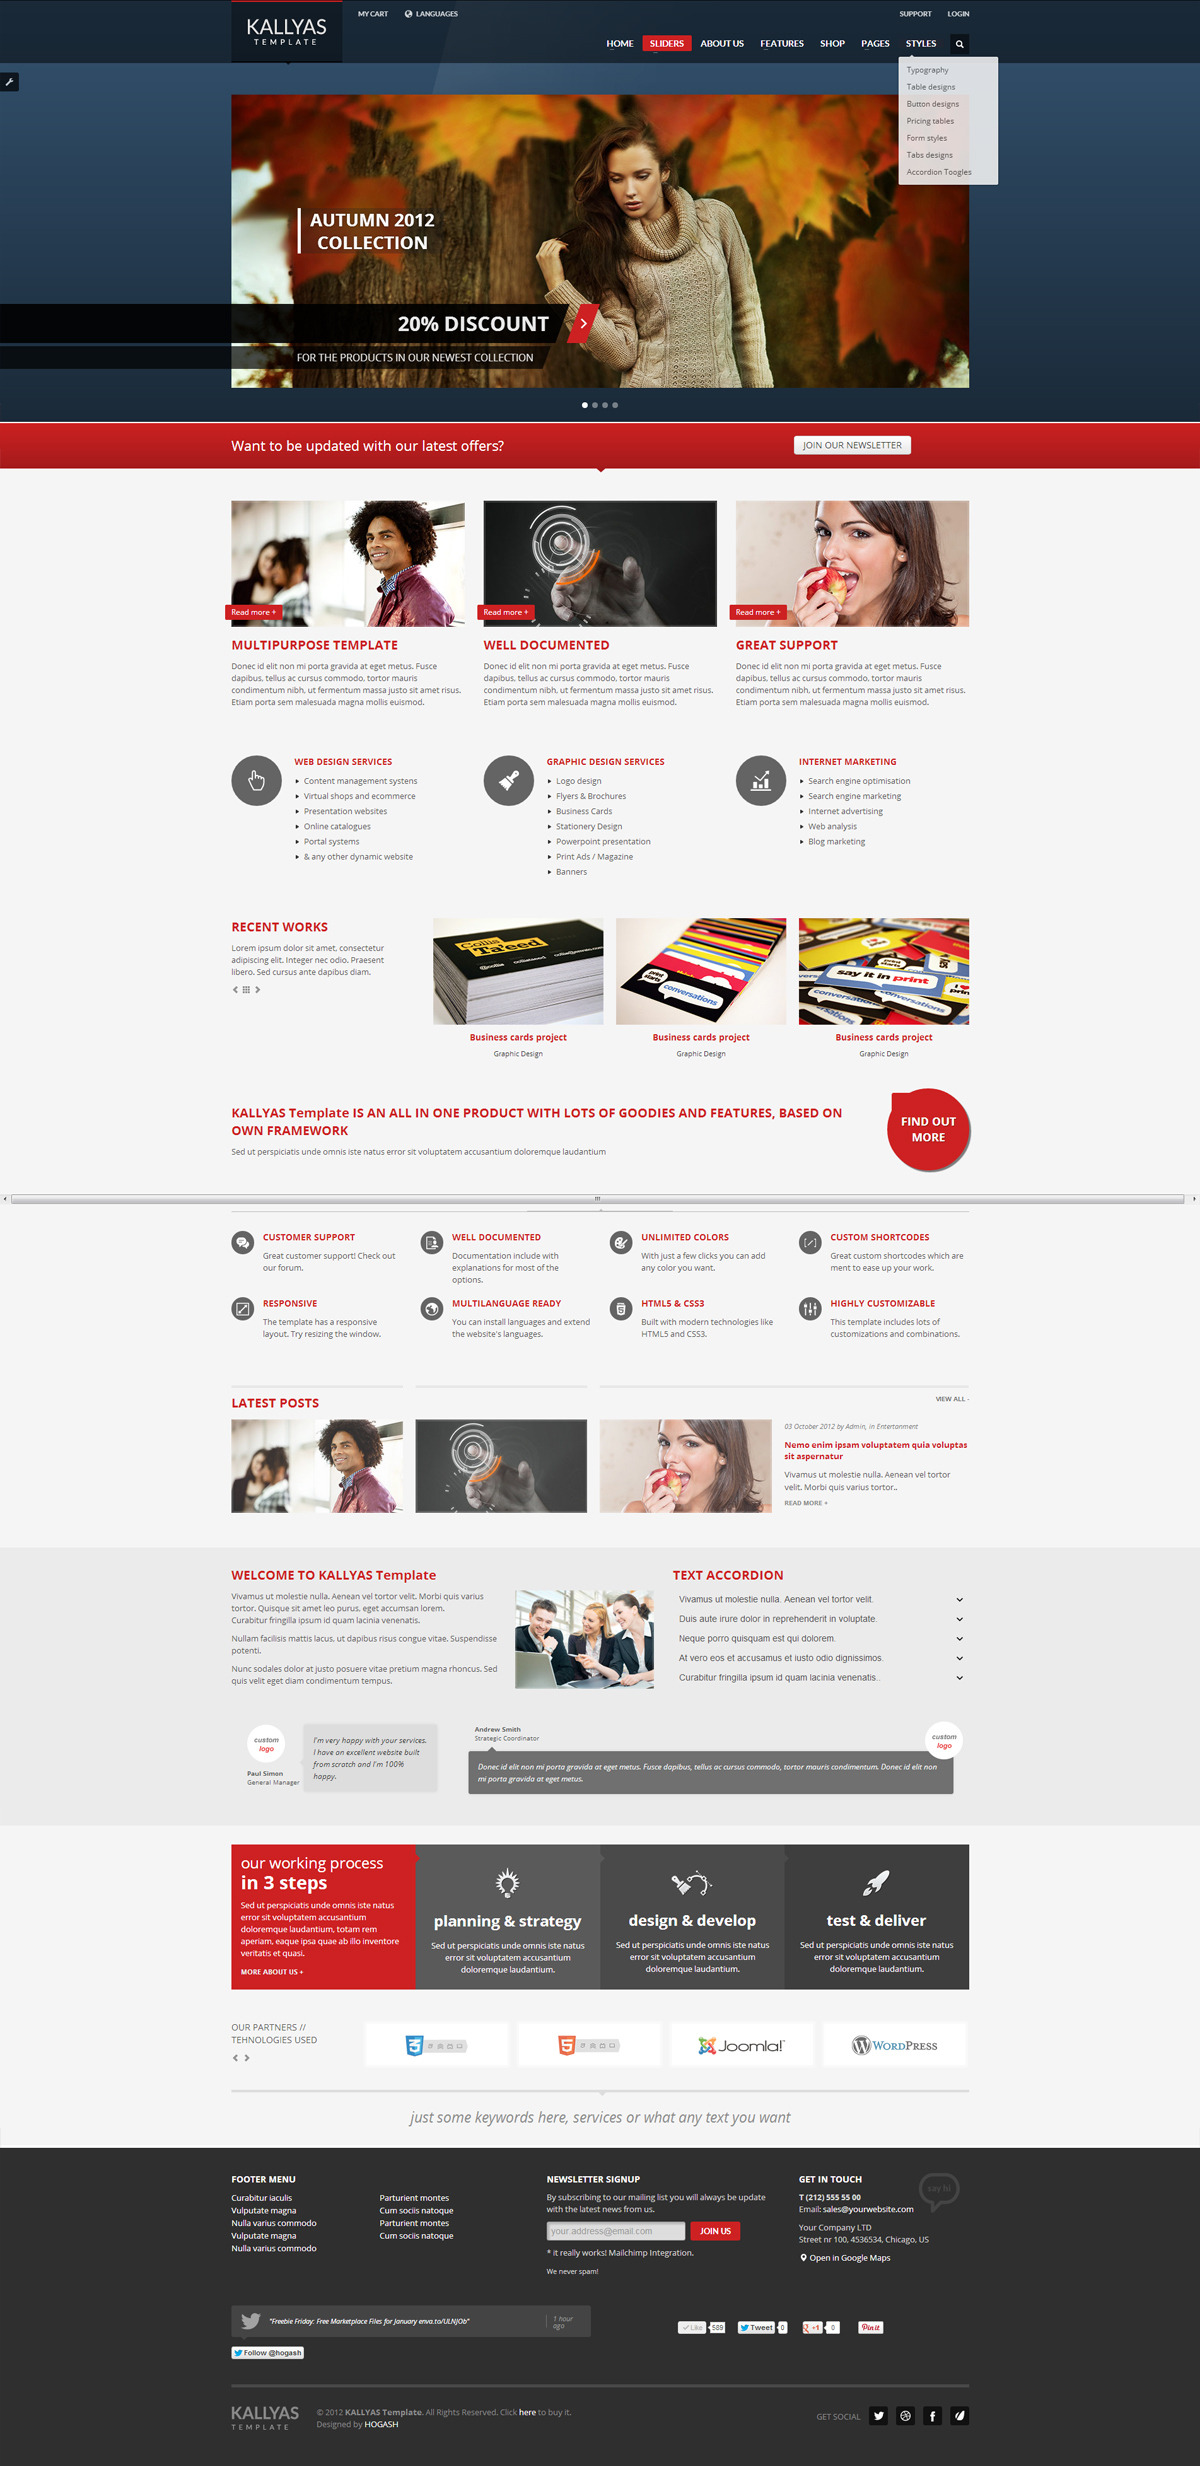 KALLYAS - Responsive Multipurpose Template - GENERAL PAGE 4